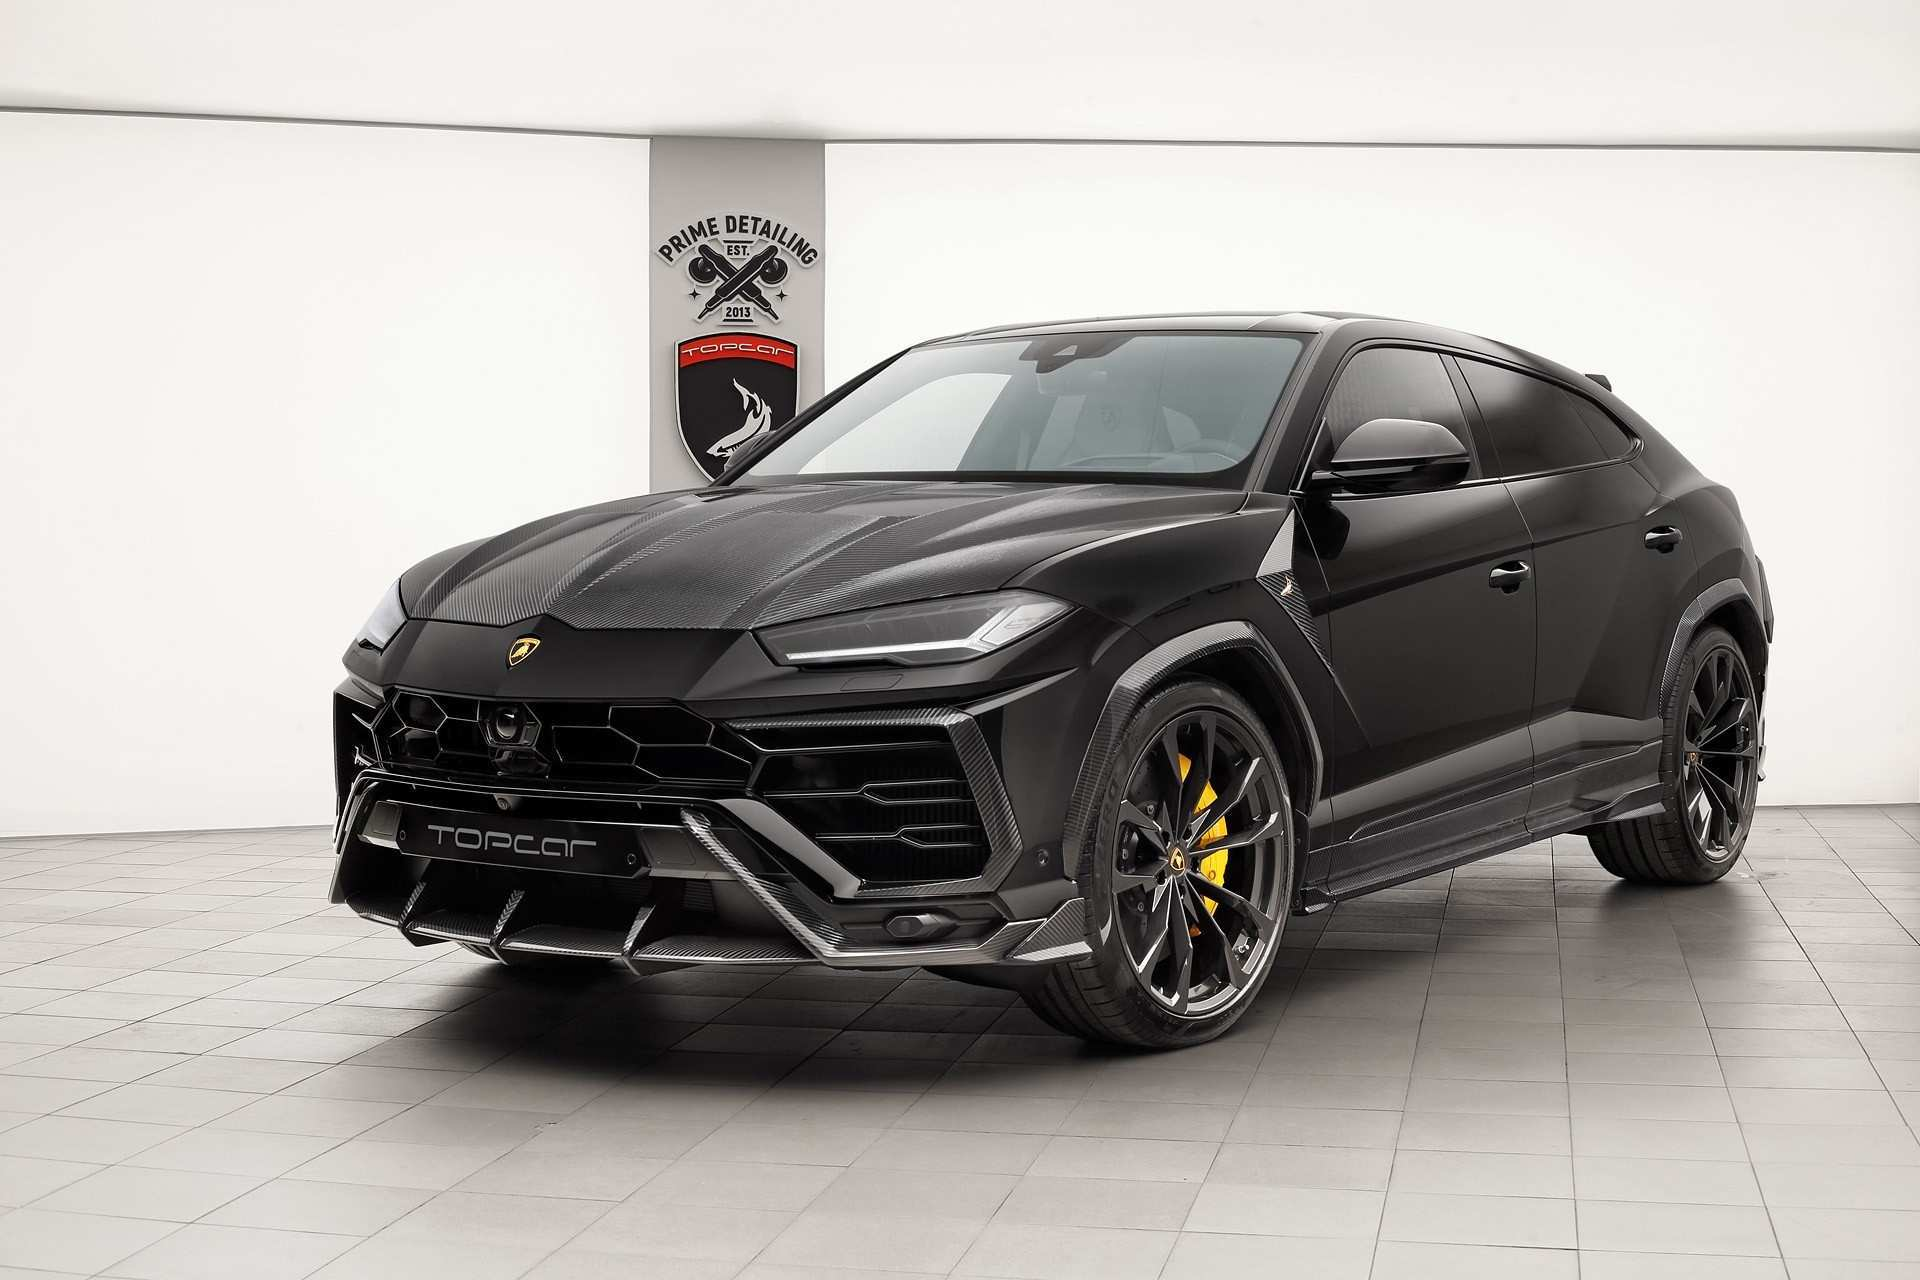 30 New 2020 Lamborghini Urus Release Date And Concept